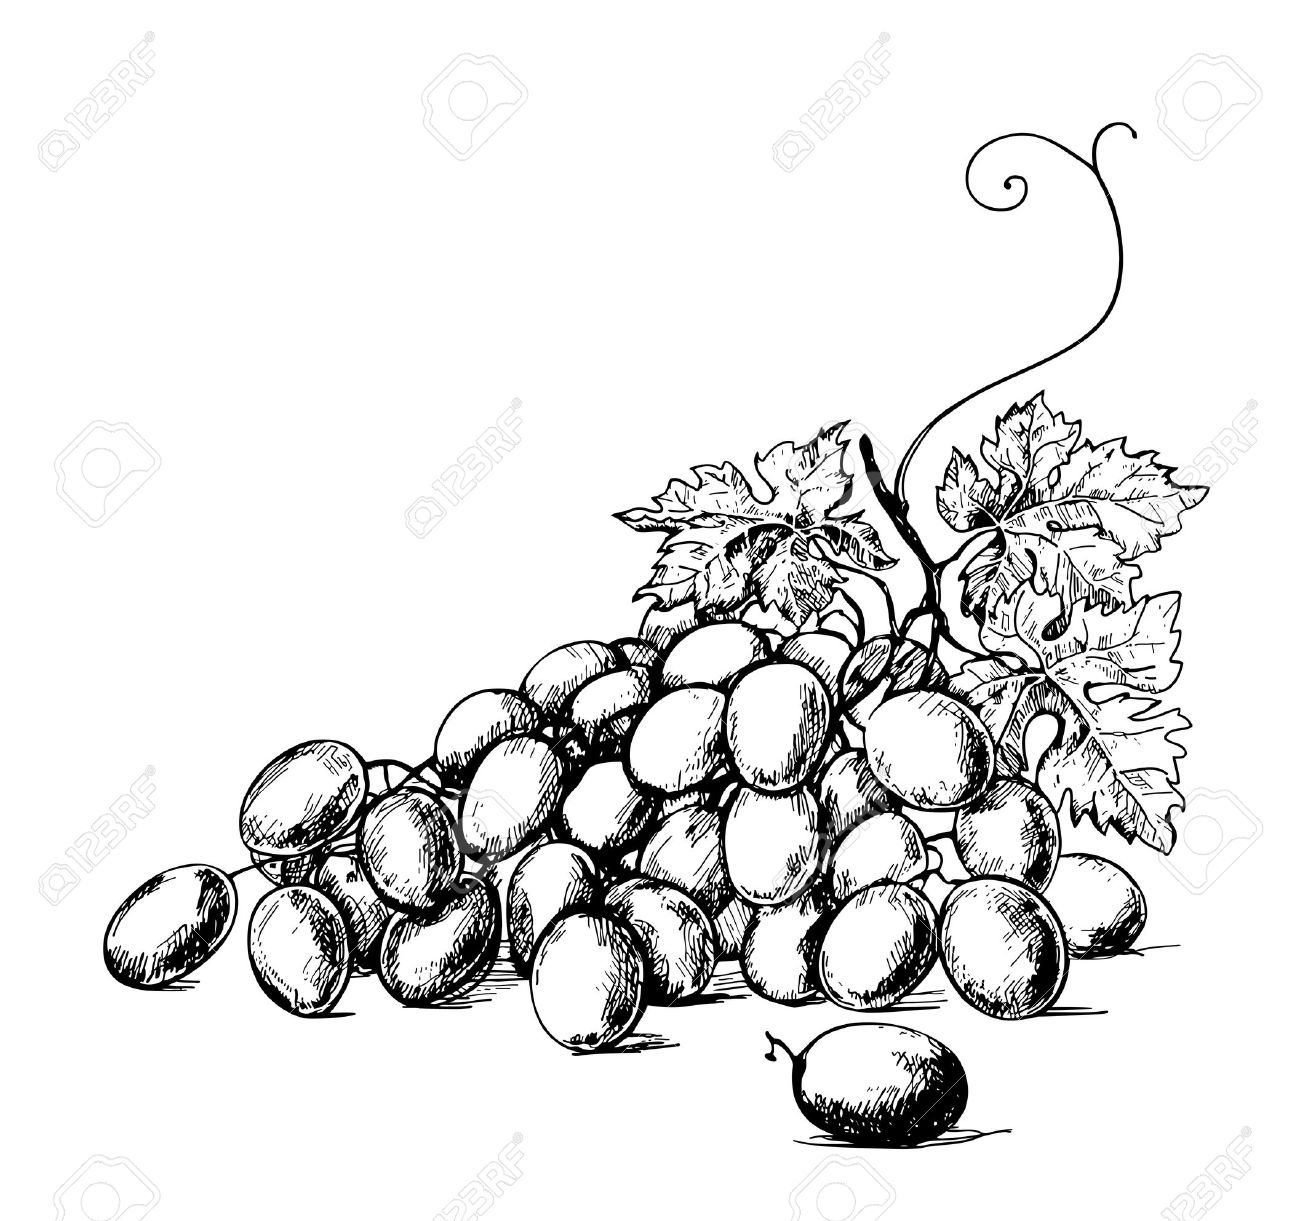 Sketch Illustration Of Bunch Of Grapes Royalty Free Cliparts Vectors And Stock Illustration Image 13549491